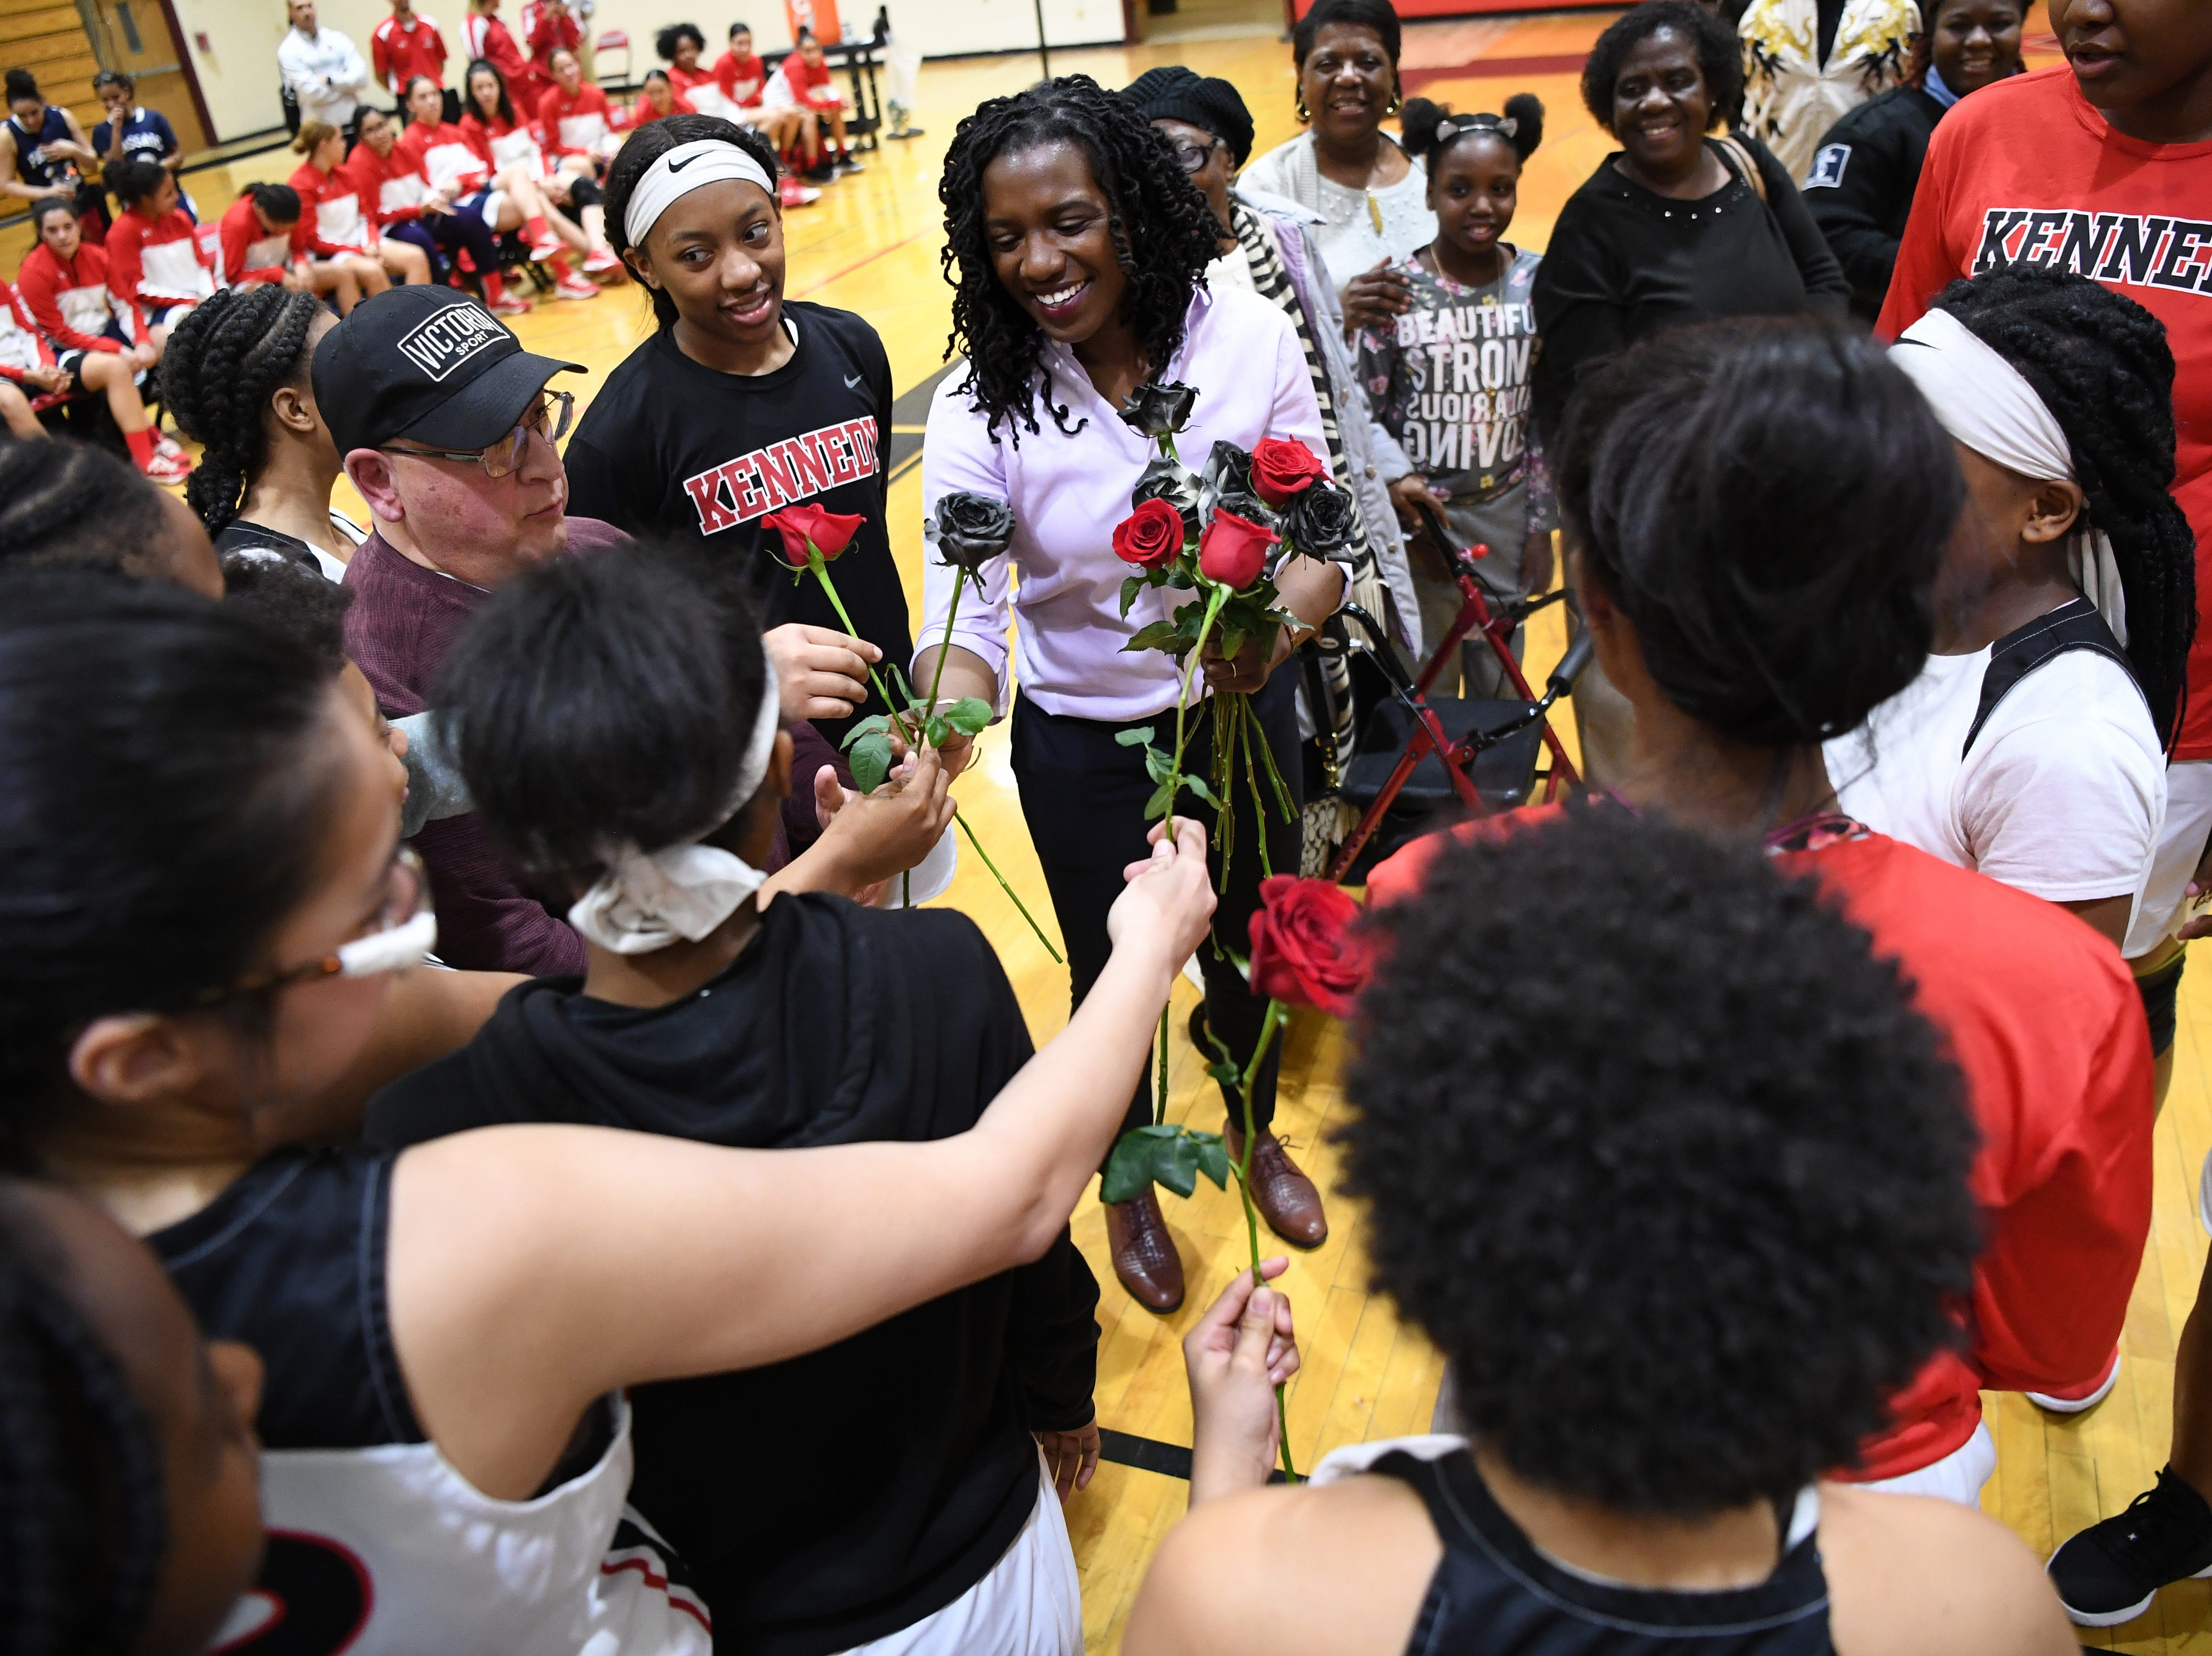 (center) Nicole Louden, who graduated from Kennedy High School in 2001 with a career total of 2,928 points, is honored in a pregame ceremony before the start of a Kennedy girls varsity basketball home game on Thursday, February 7, 2019. Louden is given roses by members of the Kennedy girls varsity basketball team.